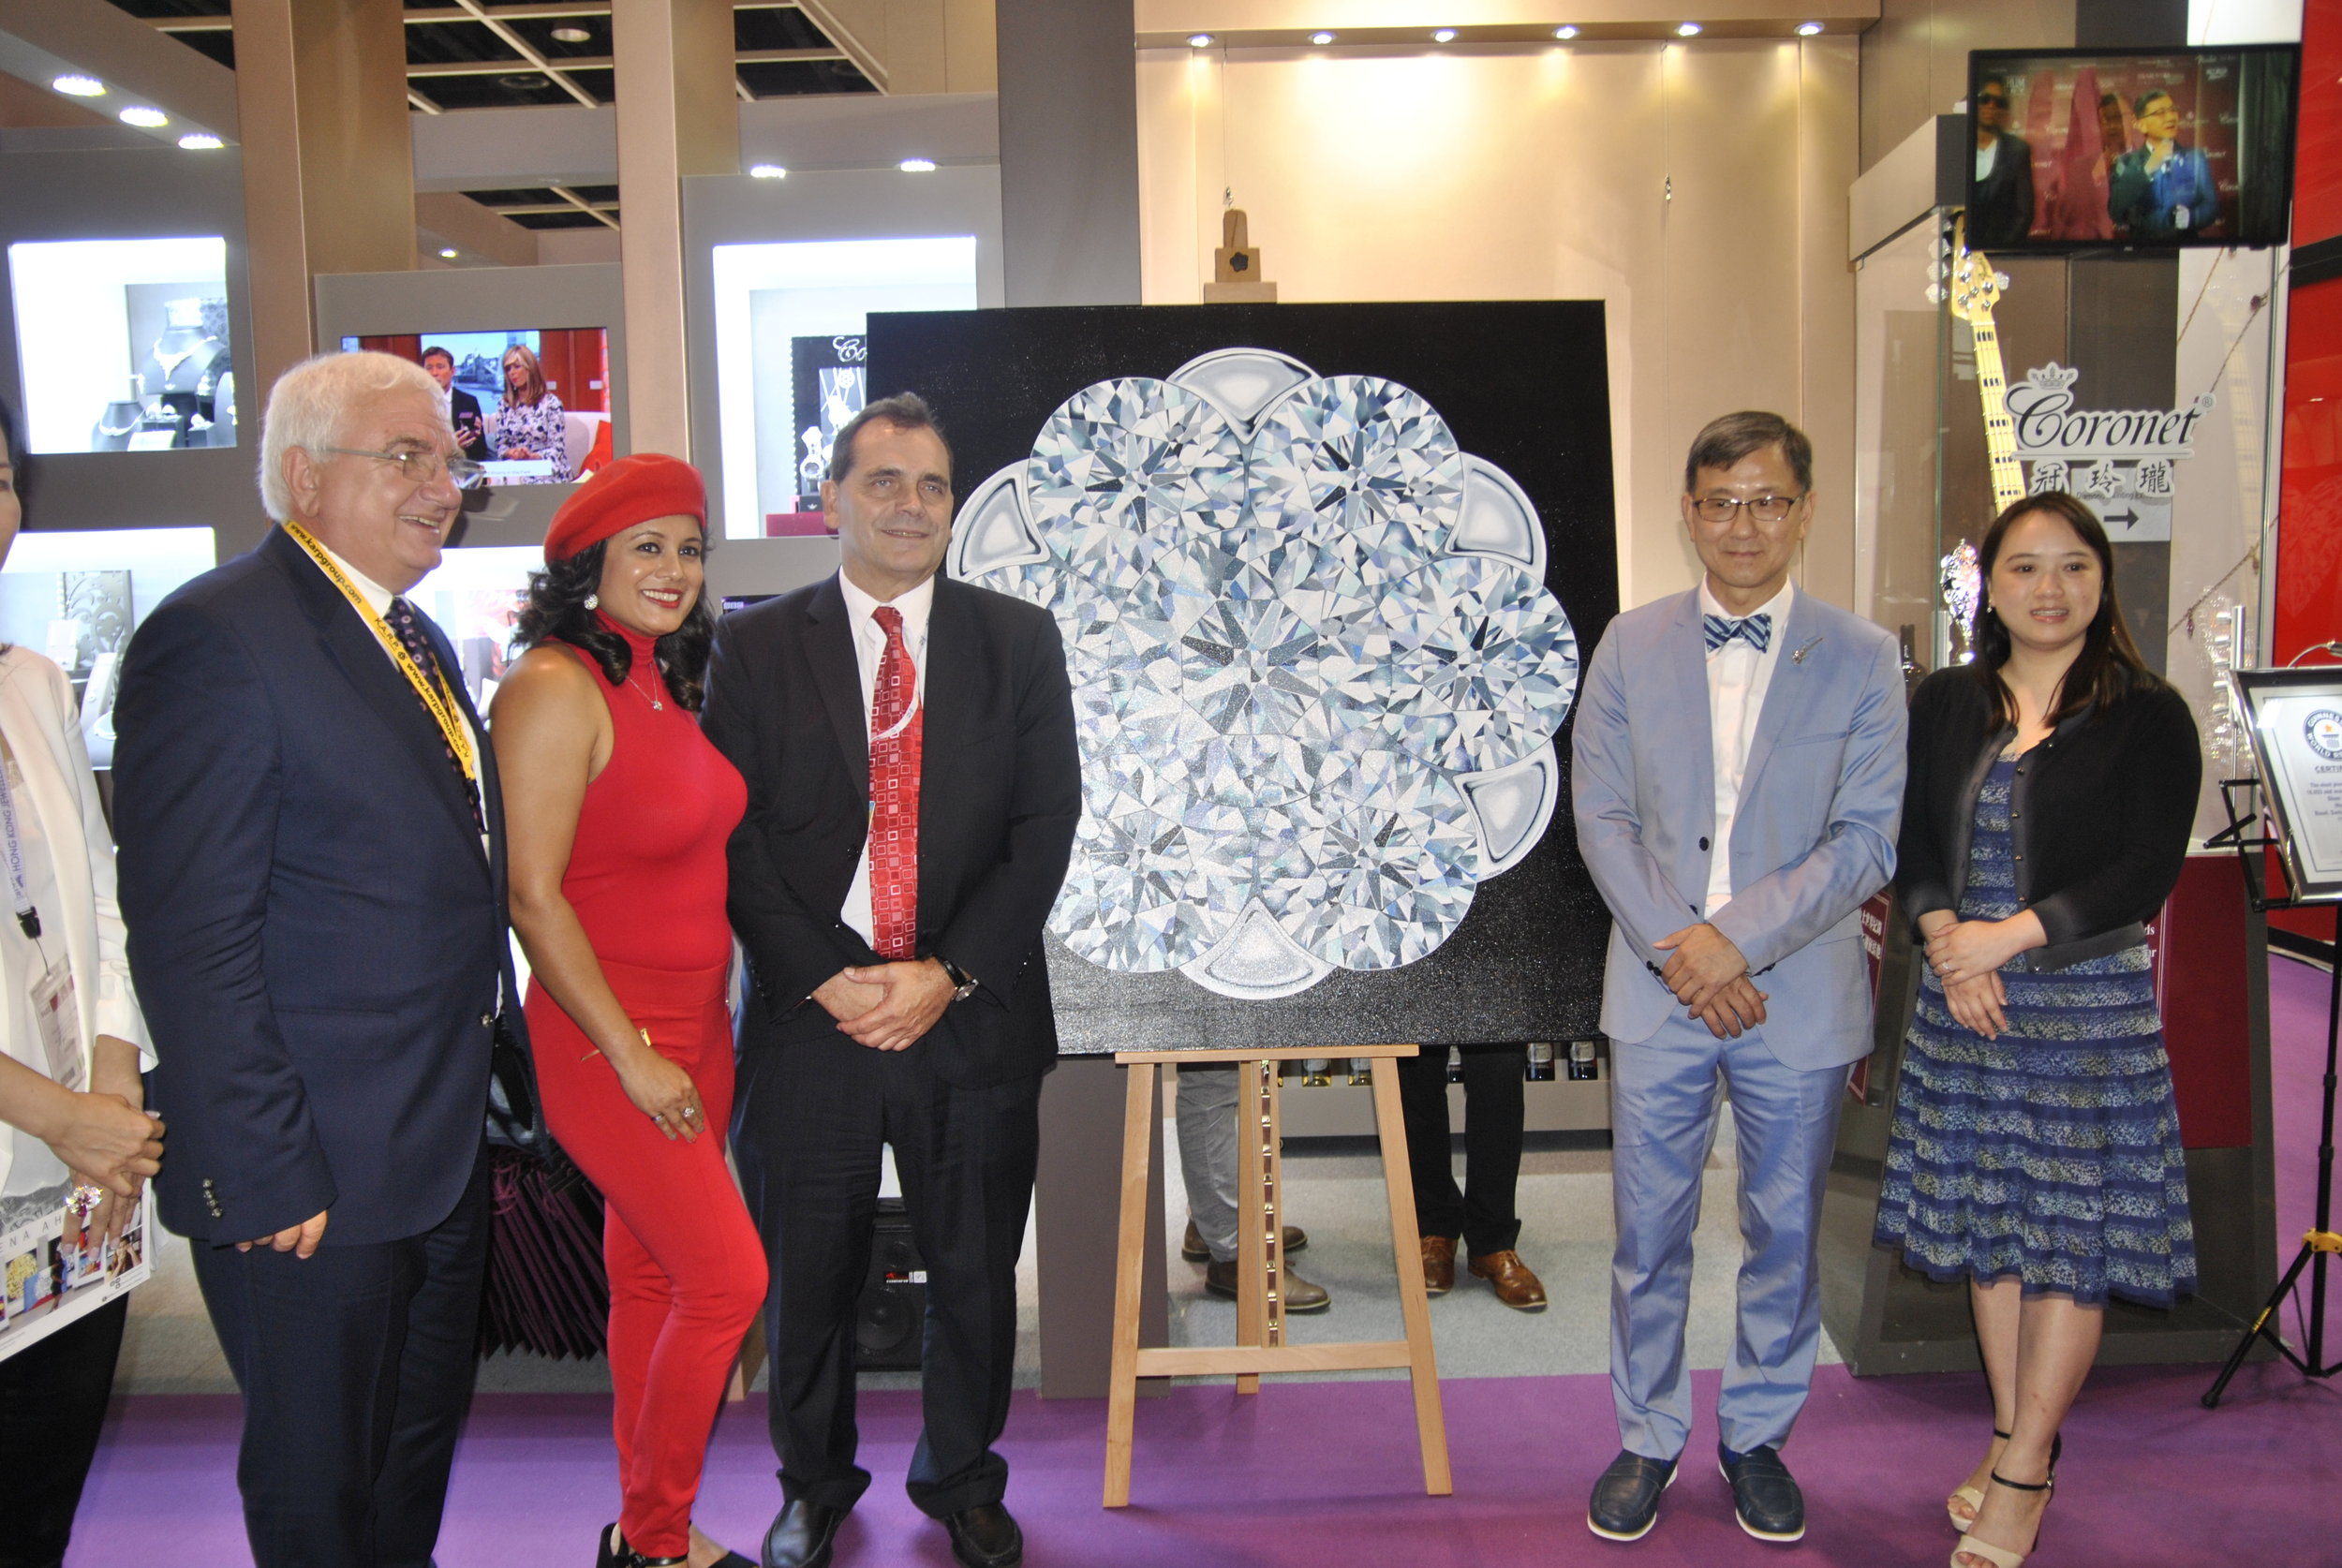 The Coronet Diamond painting was unveiled at the September Hong Kong Jewellery & Gem Fair 2016.